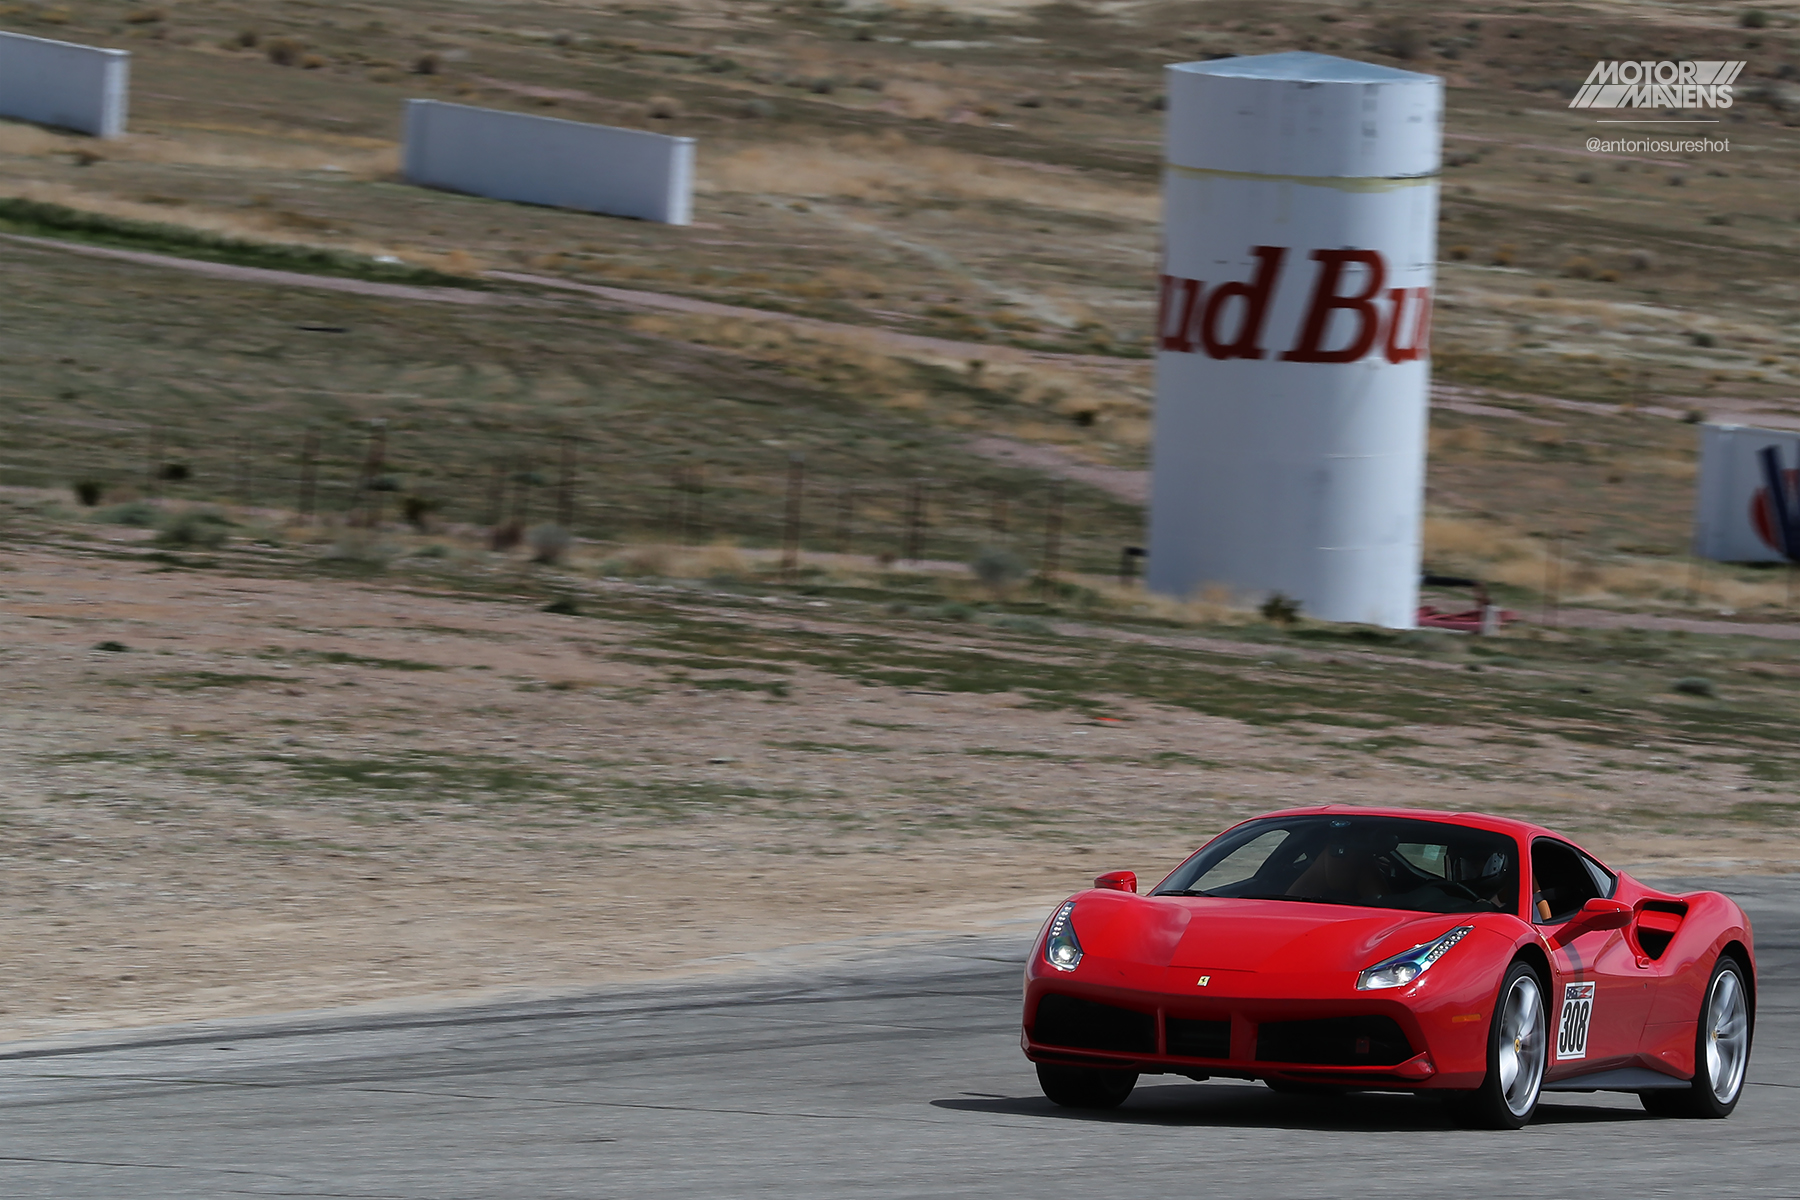 Ferrari 488 GTB,Ferrari 488, Ferrari, Willow Springs, Big Willow